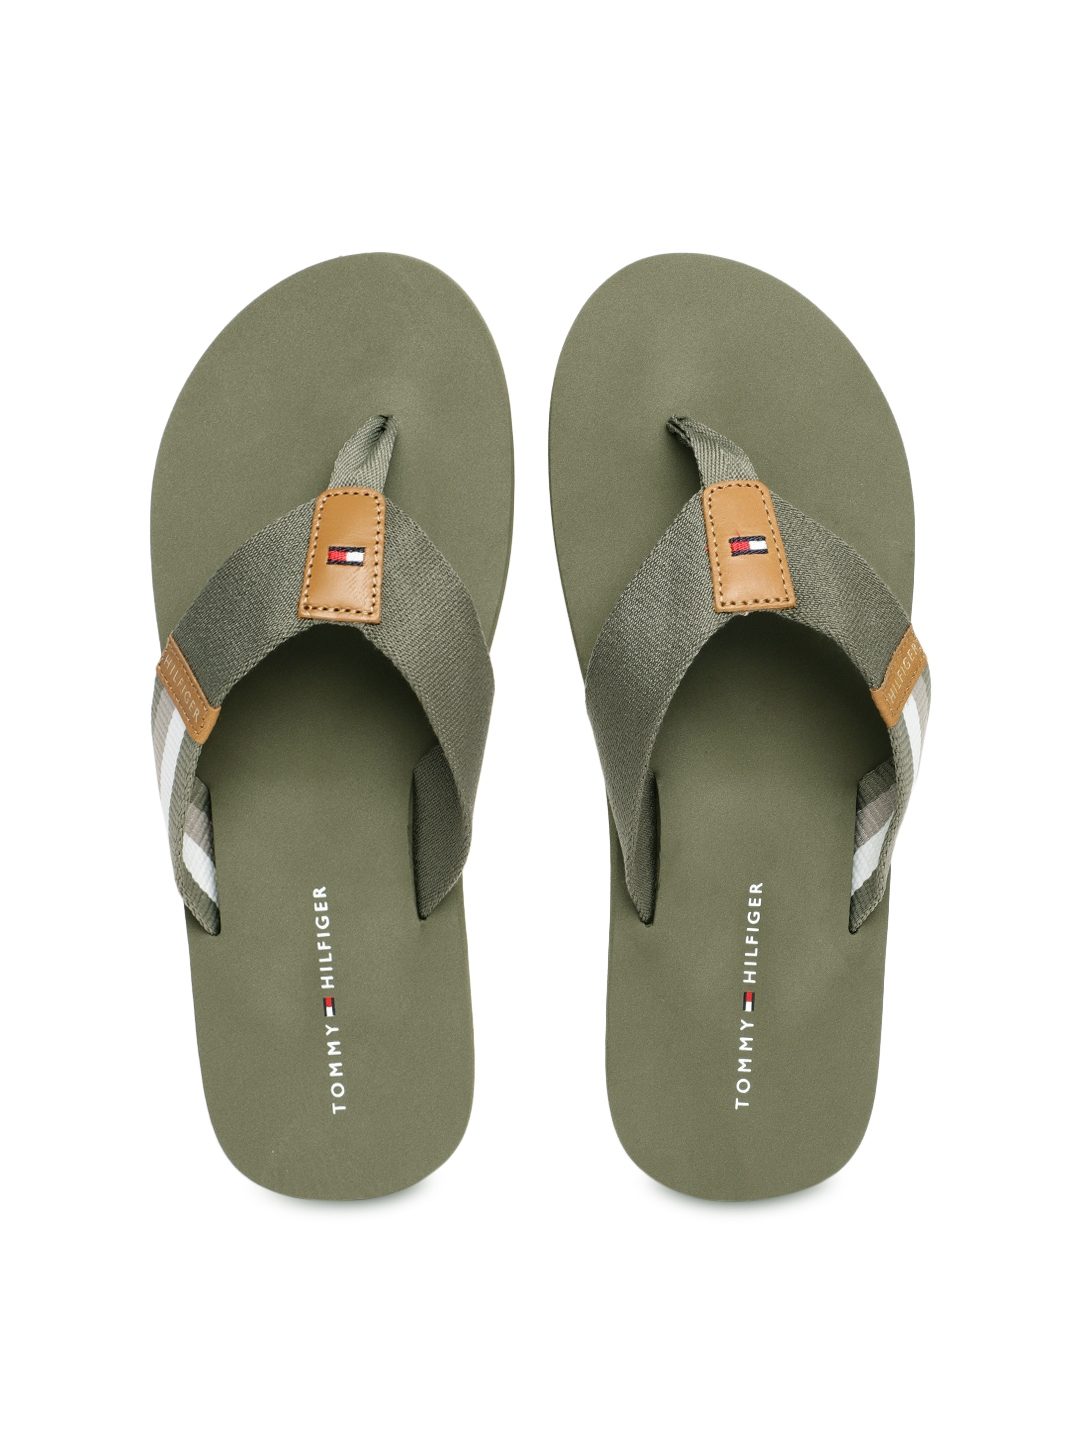 3ebd72dfa09e Buy Tommy Hilfiger Men Olive Green Solid Thong Flip Flops - Flip ...